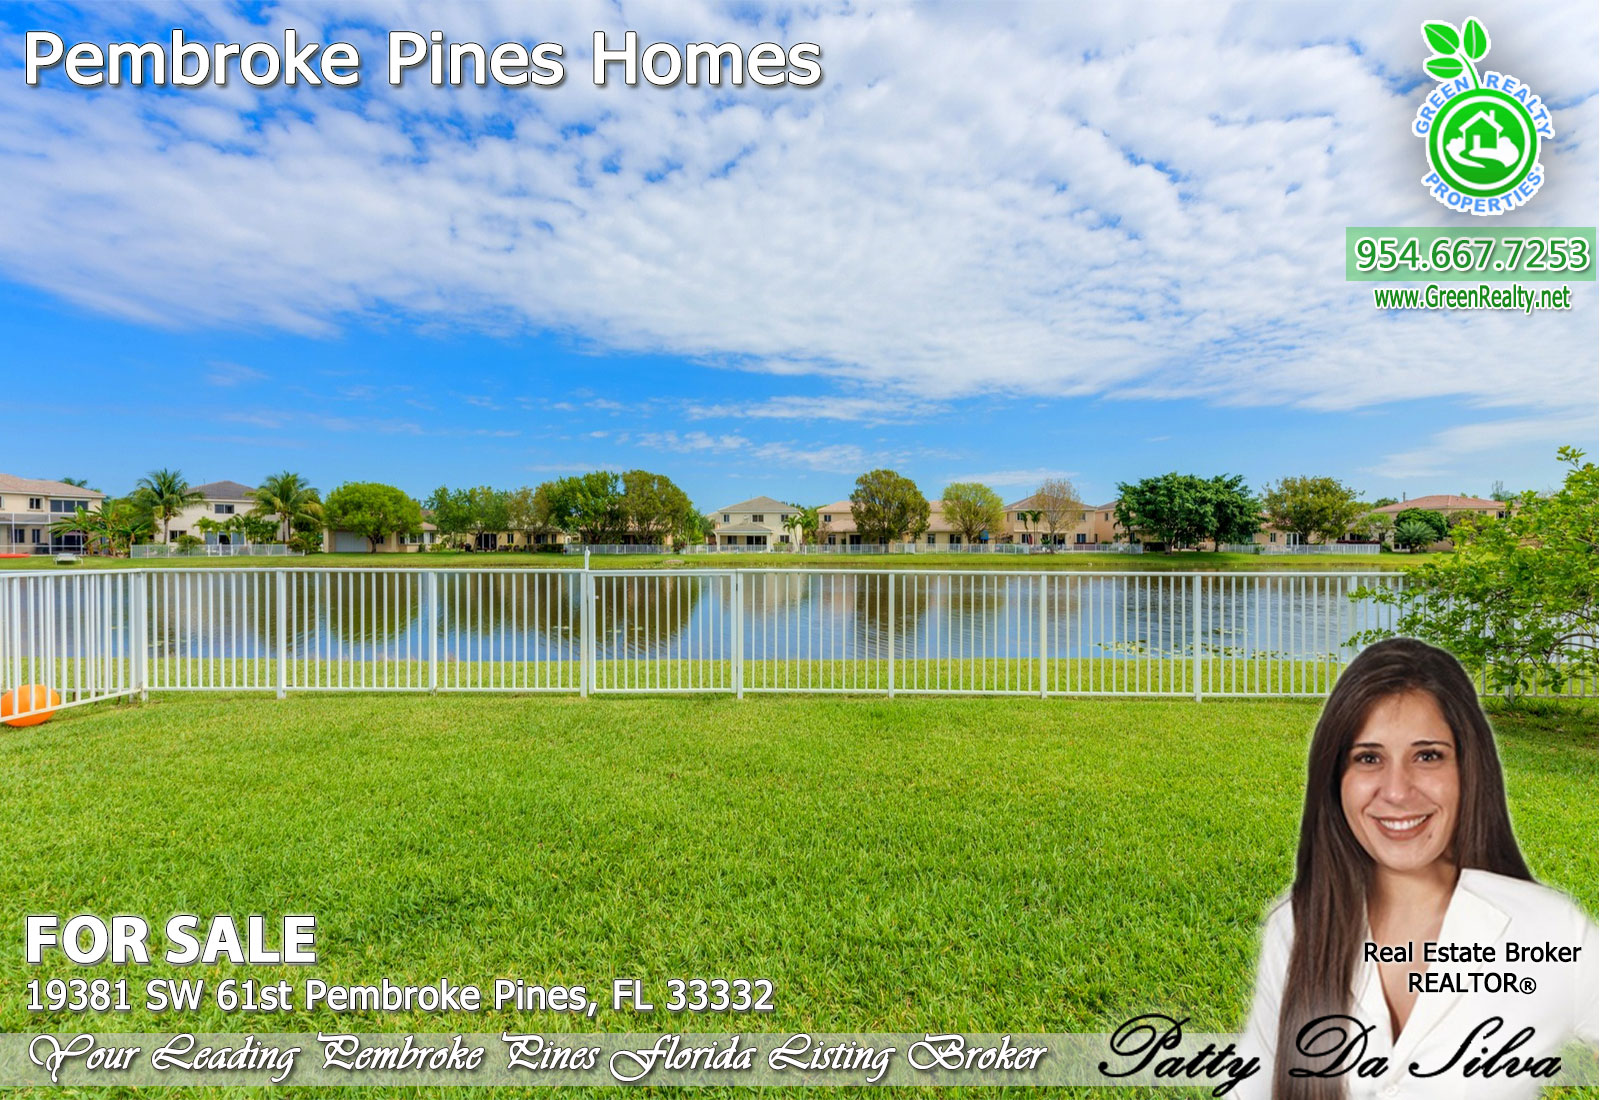 pembroke-pines-real-estate-company-green-realty-properties